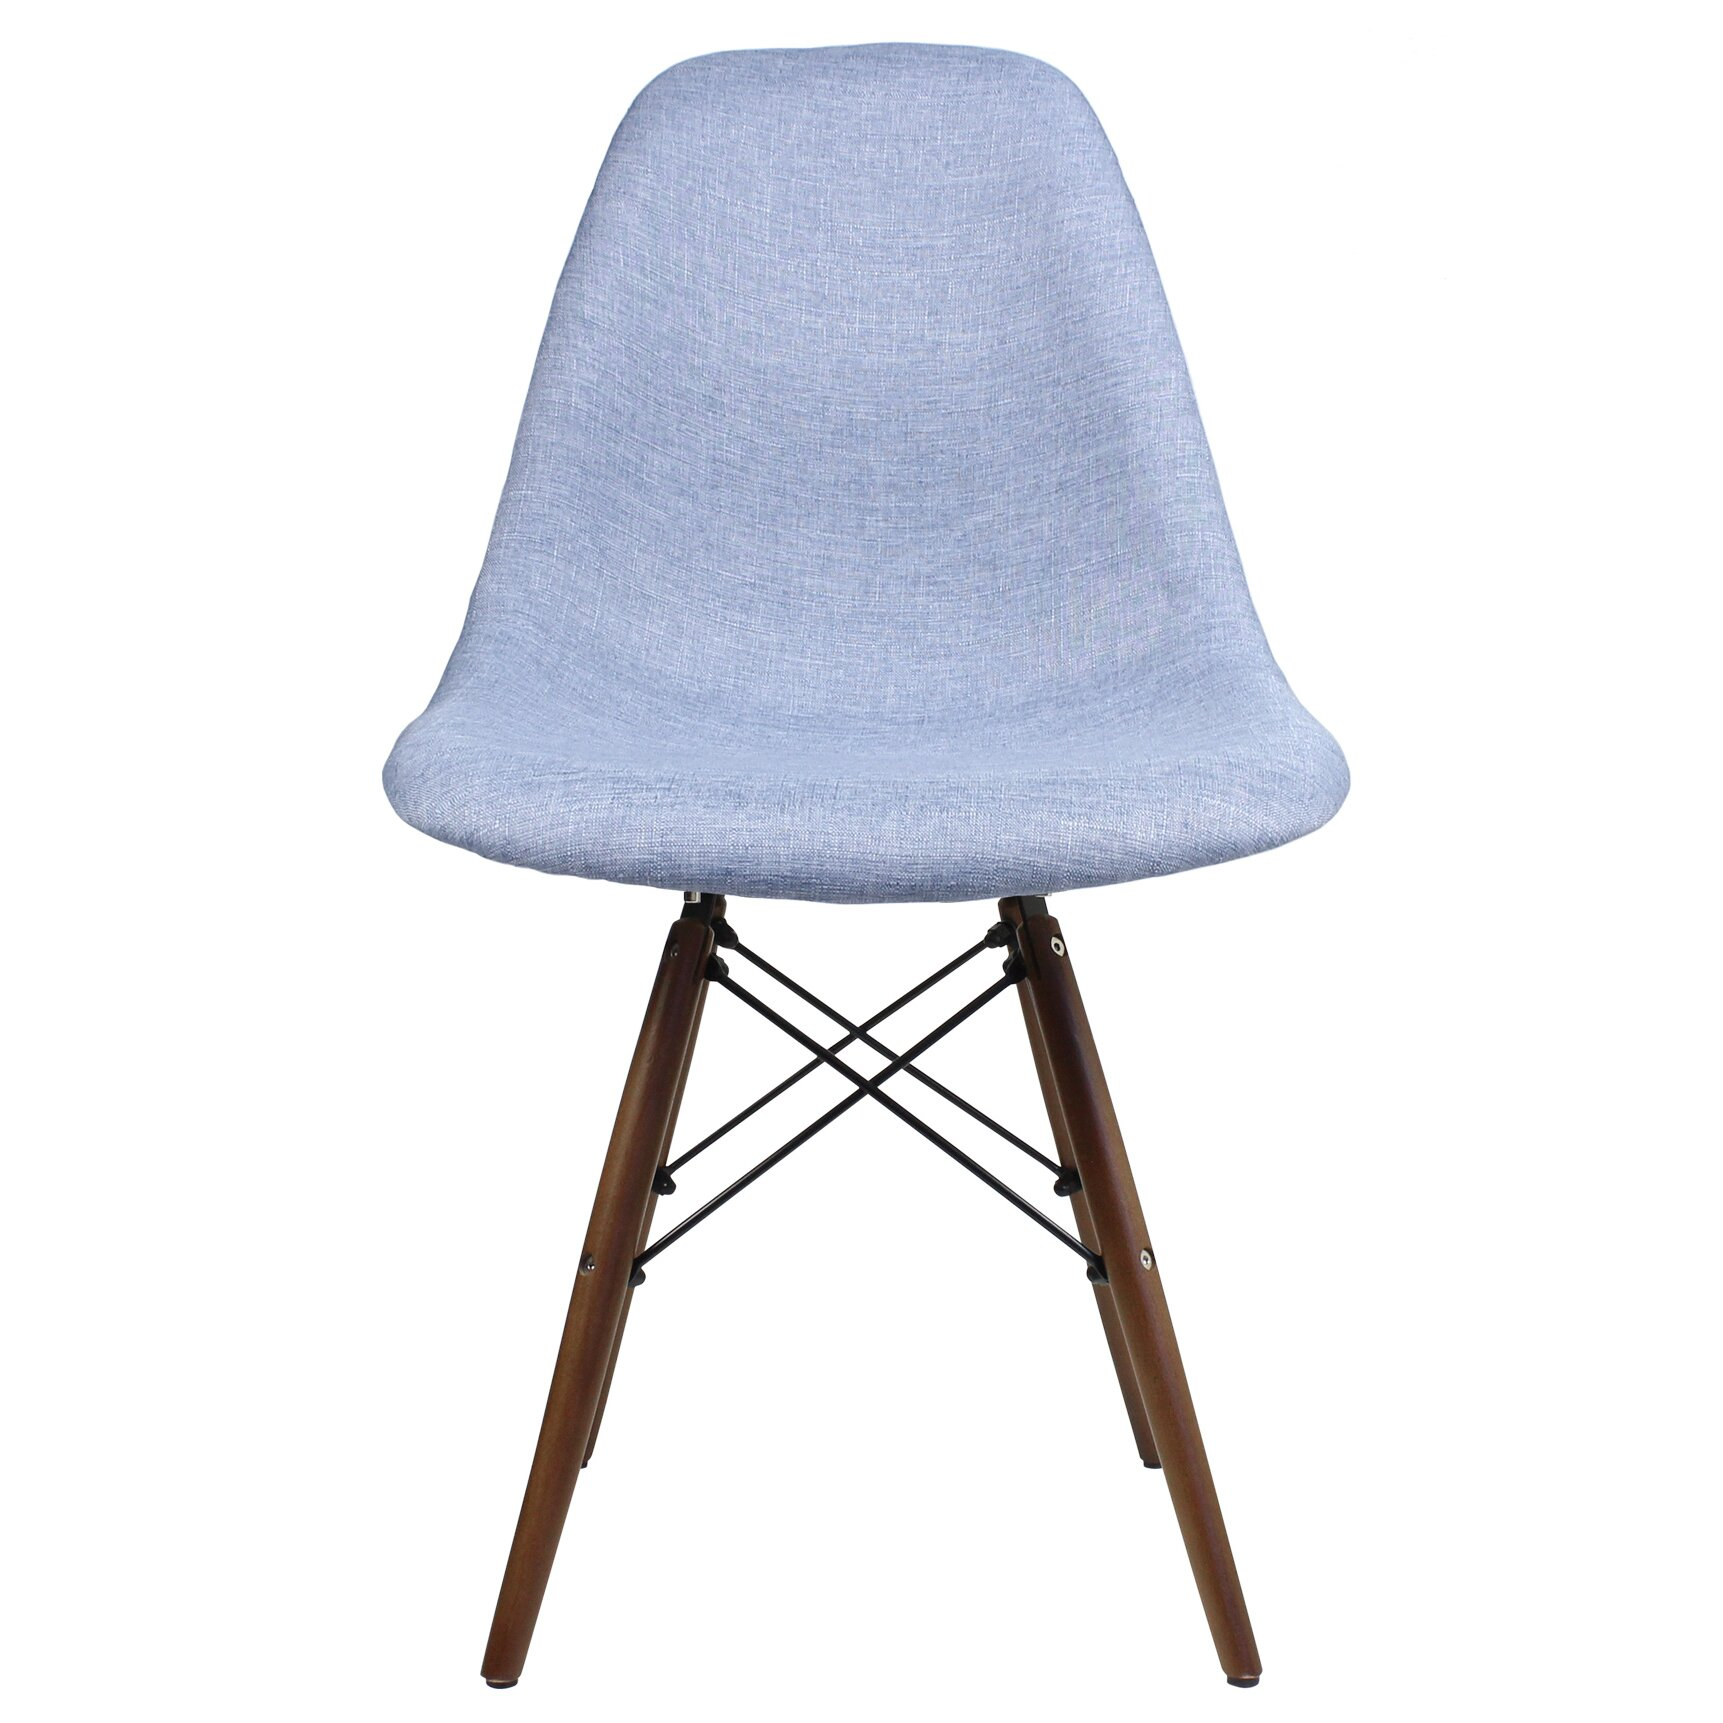 Modern Coffe Side Stool Designs : eModern Decor Mid Century Modern Woven Fabric Upholstered Side Chair ...